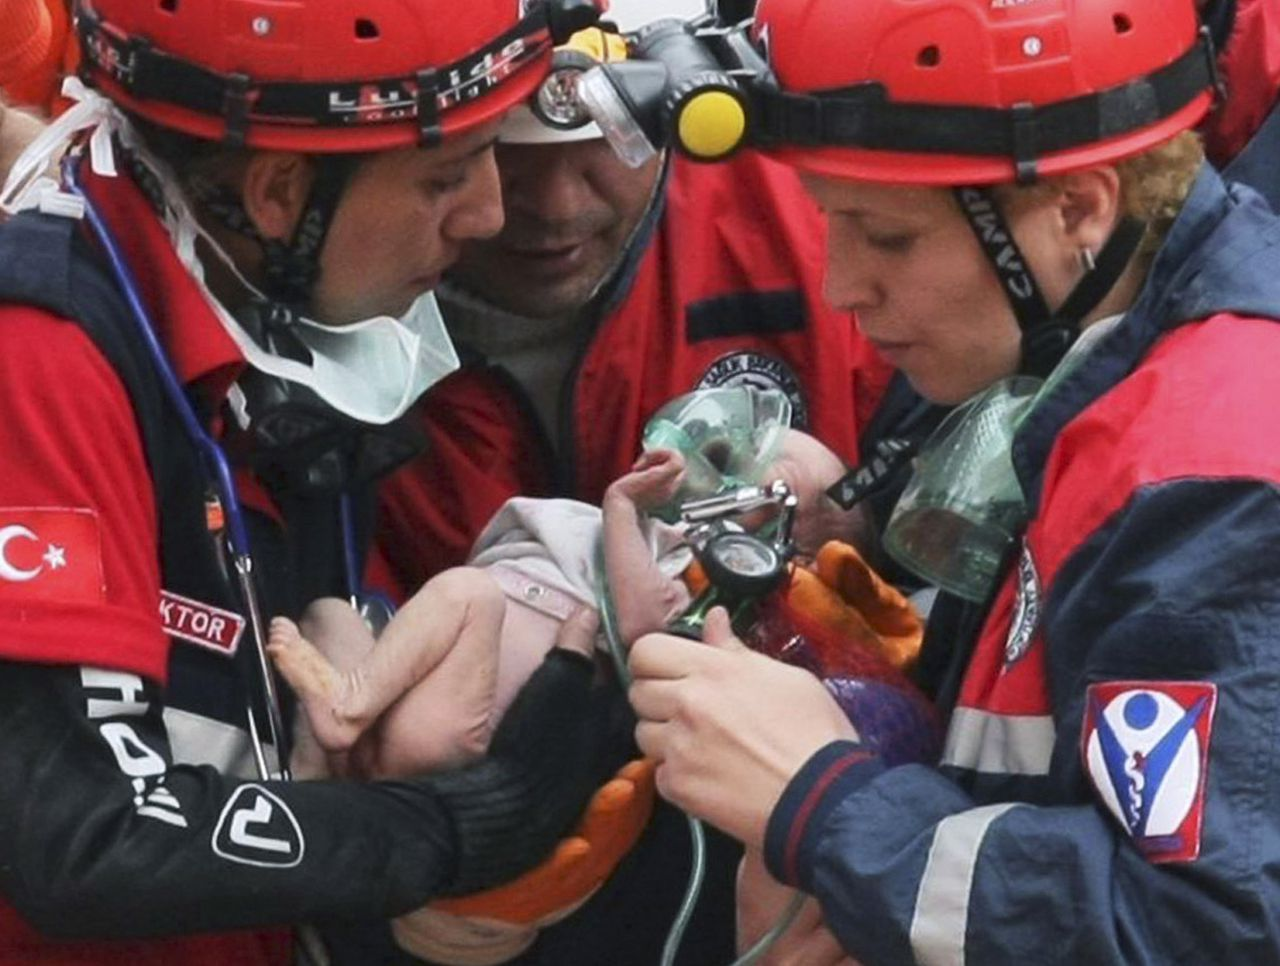 Turkish rescuers carry Azra Karaduman, a two-week-old baby girl they have saved from under debris of a collapsed building in Ercis, Van, eastern Turkey, Tuesday, Oct. 25, 2011. The baby's mother, Semiha, was still alive, pinned next to a sofa inside the flattened building from where the child was rescued. A 7.2-magnitude earthquake toppled some 2,000 buildings in eastern Turkey, Sunday.(AP Photo)